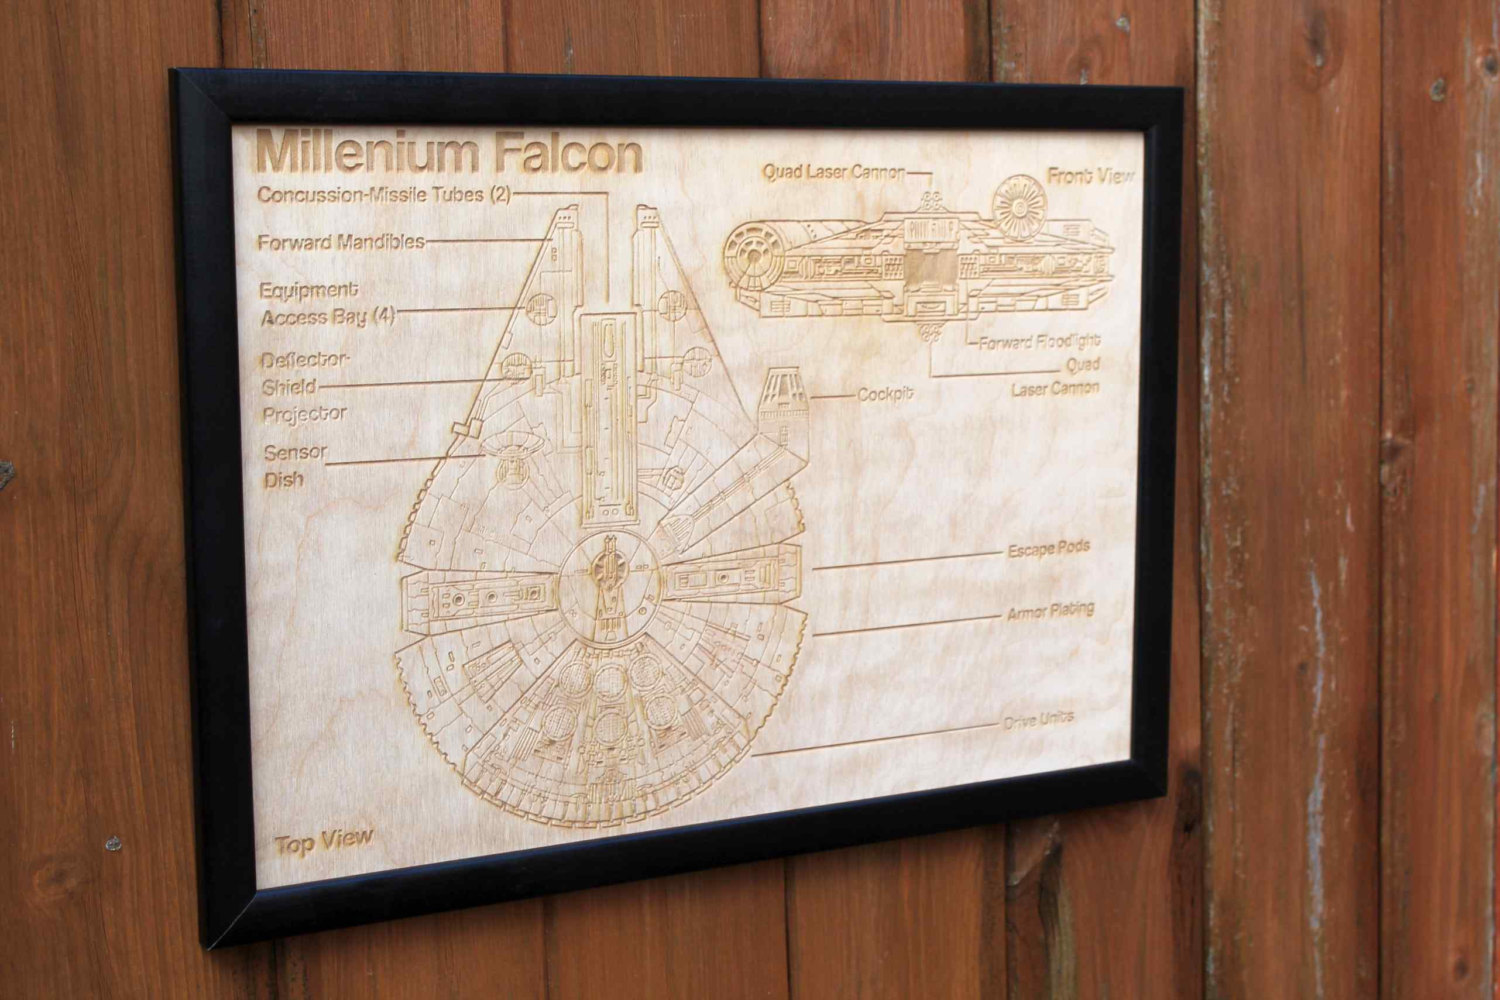 Wooden Millennium Falcon Map Engraved Into Wood